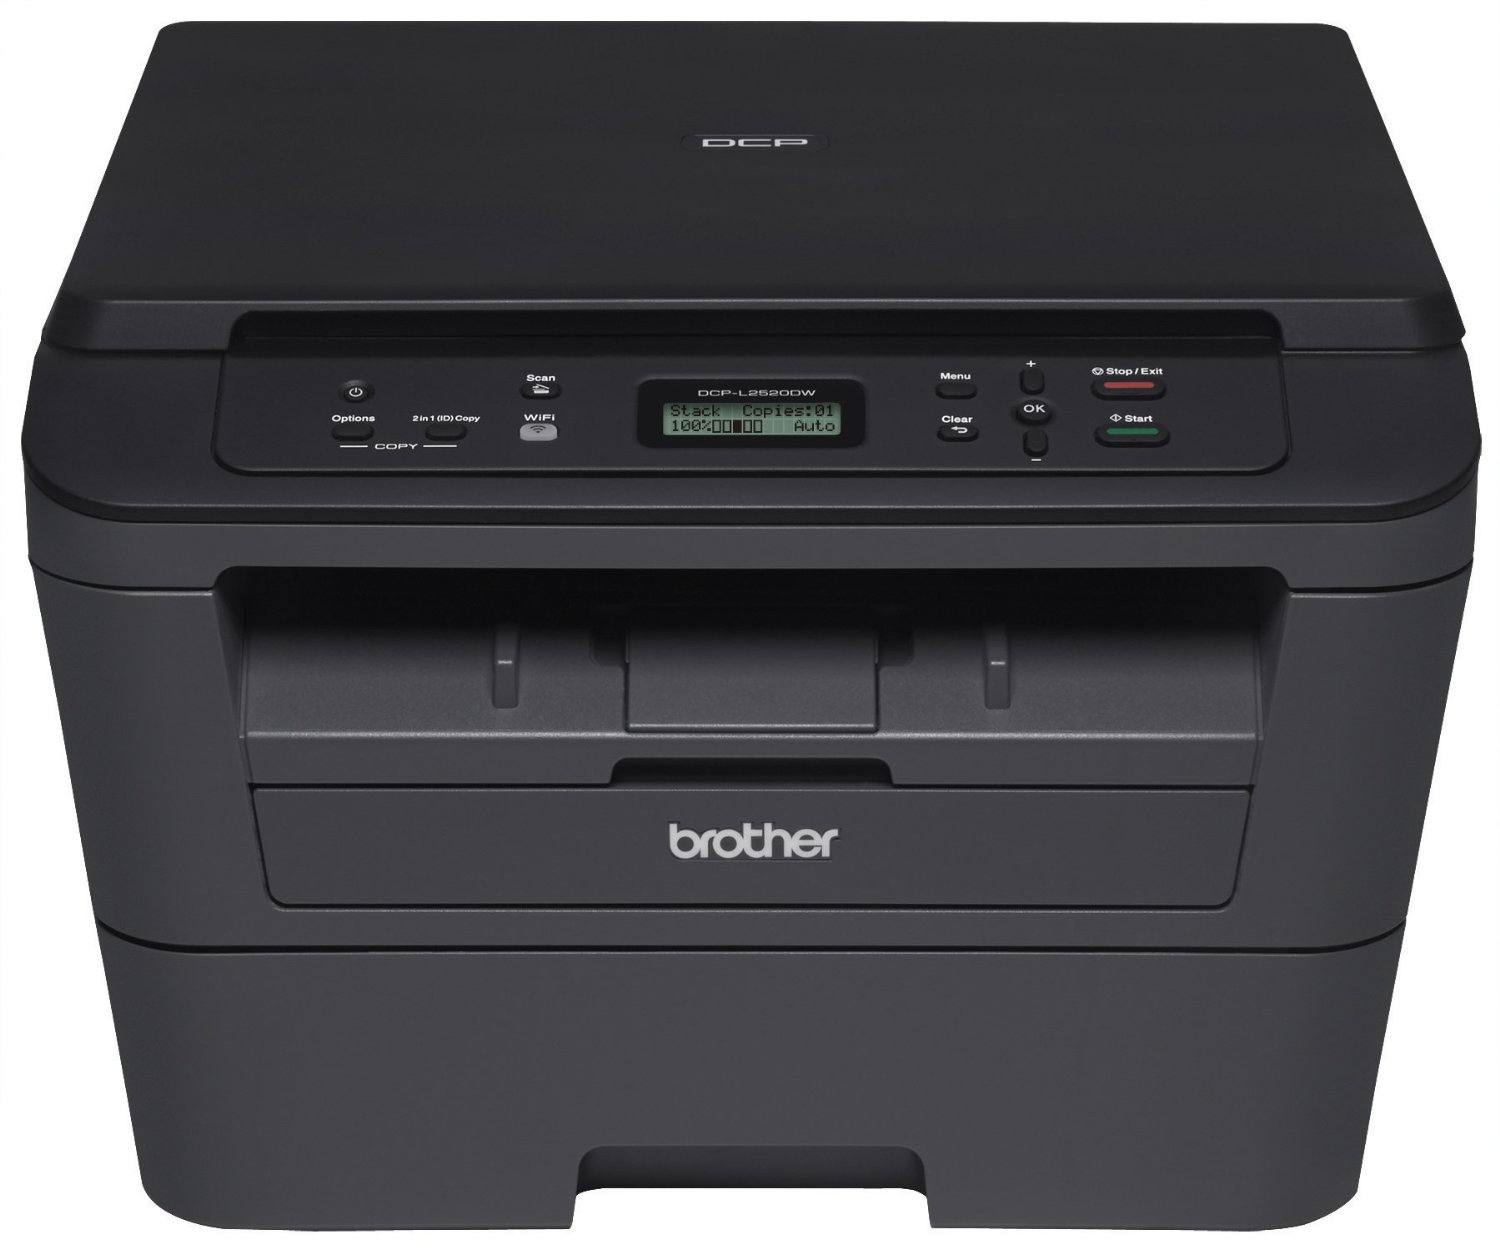 Brother DCP-L2520DW multifunctional